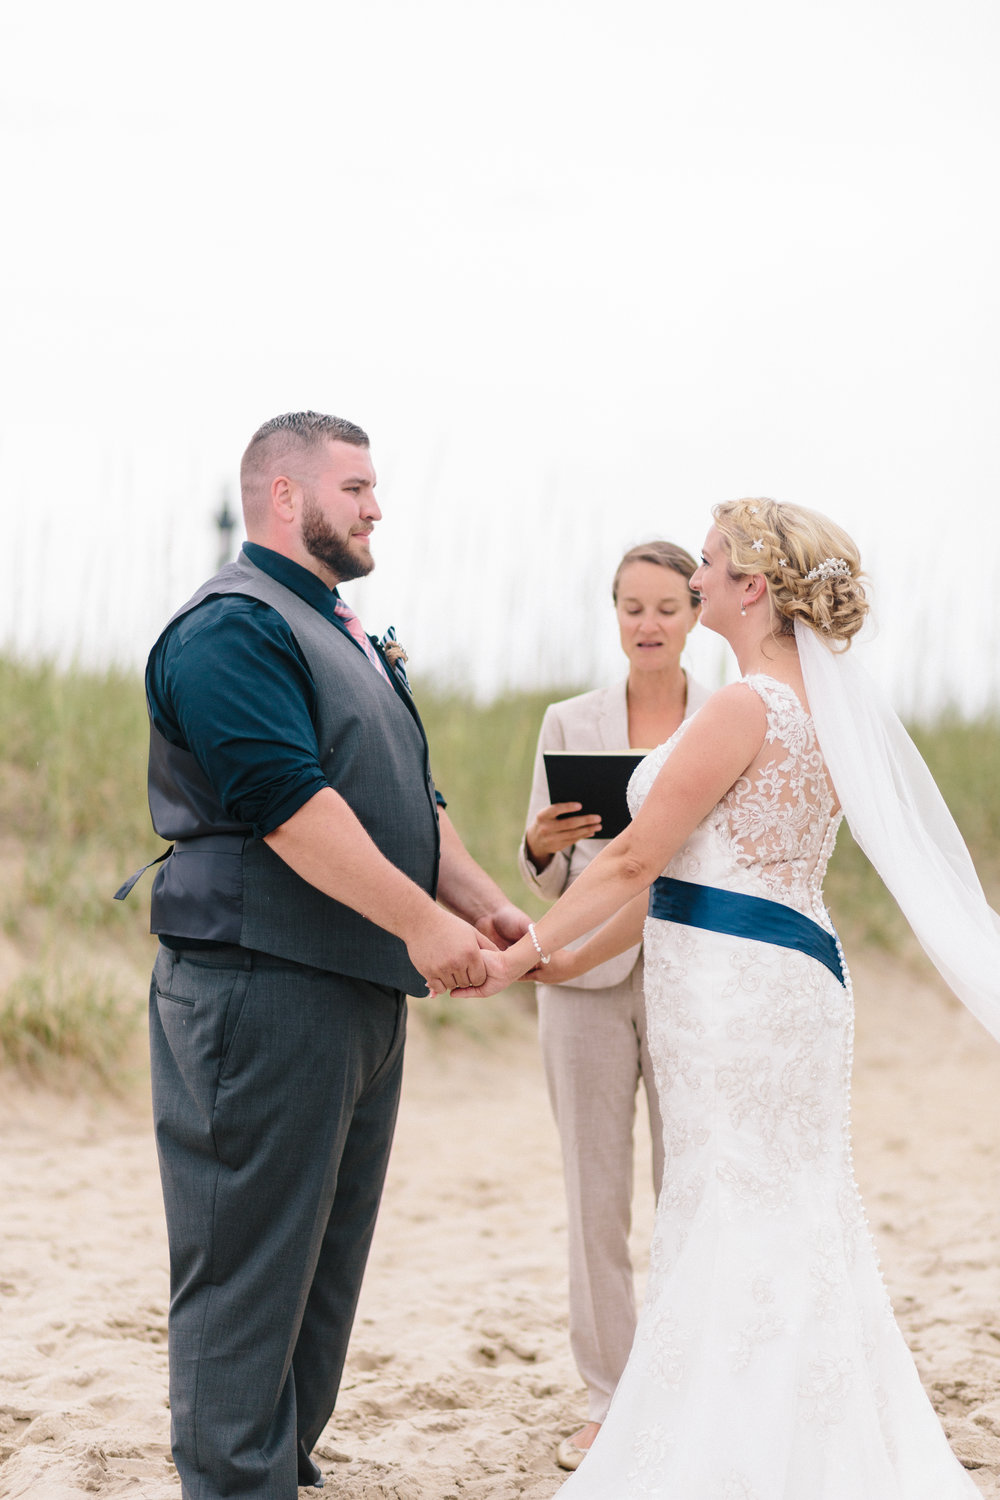 alyssa barletter photography buxton north carolina outer banks obx cape hatteras elopement intmate beach wedding-25.jpg